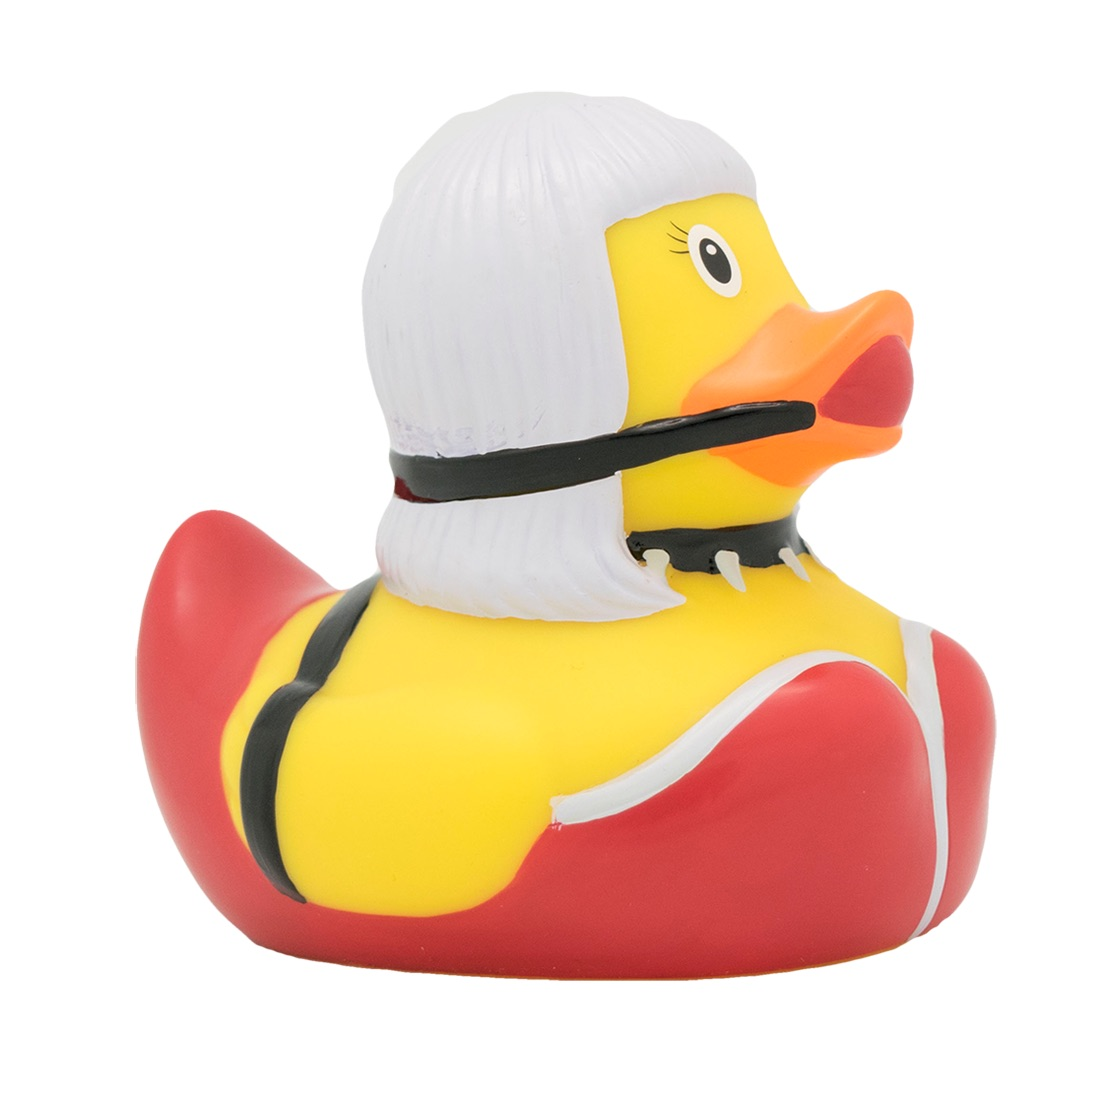 Sm Rubber Duck Buy Premium Rubber Ducks Online World Wide Delivery